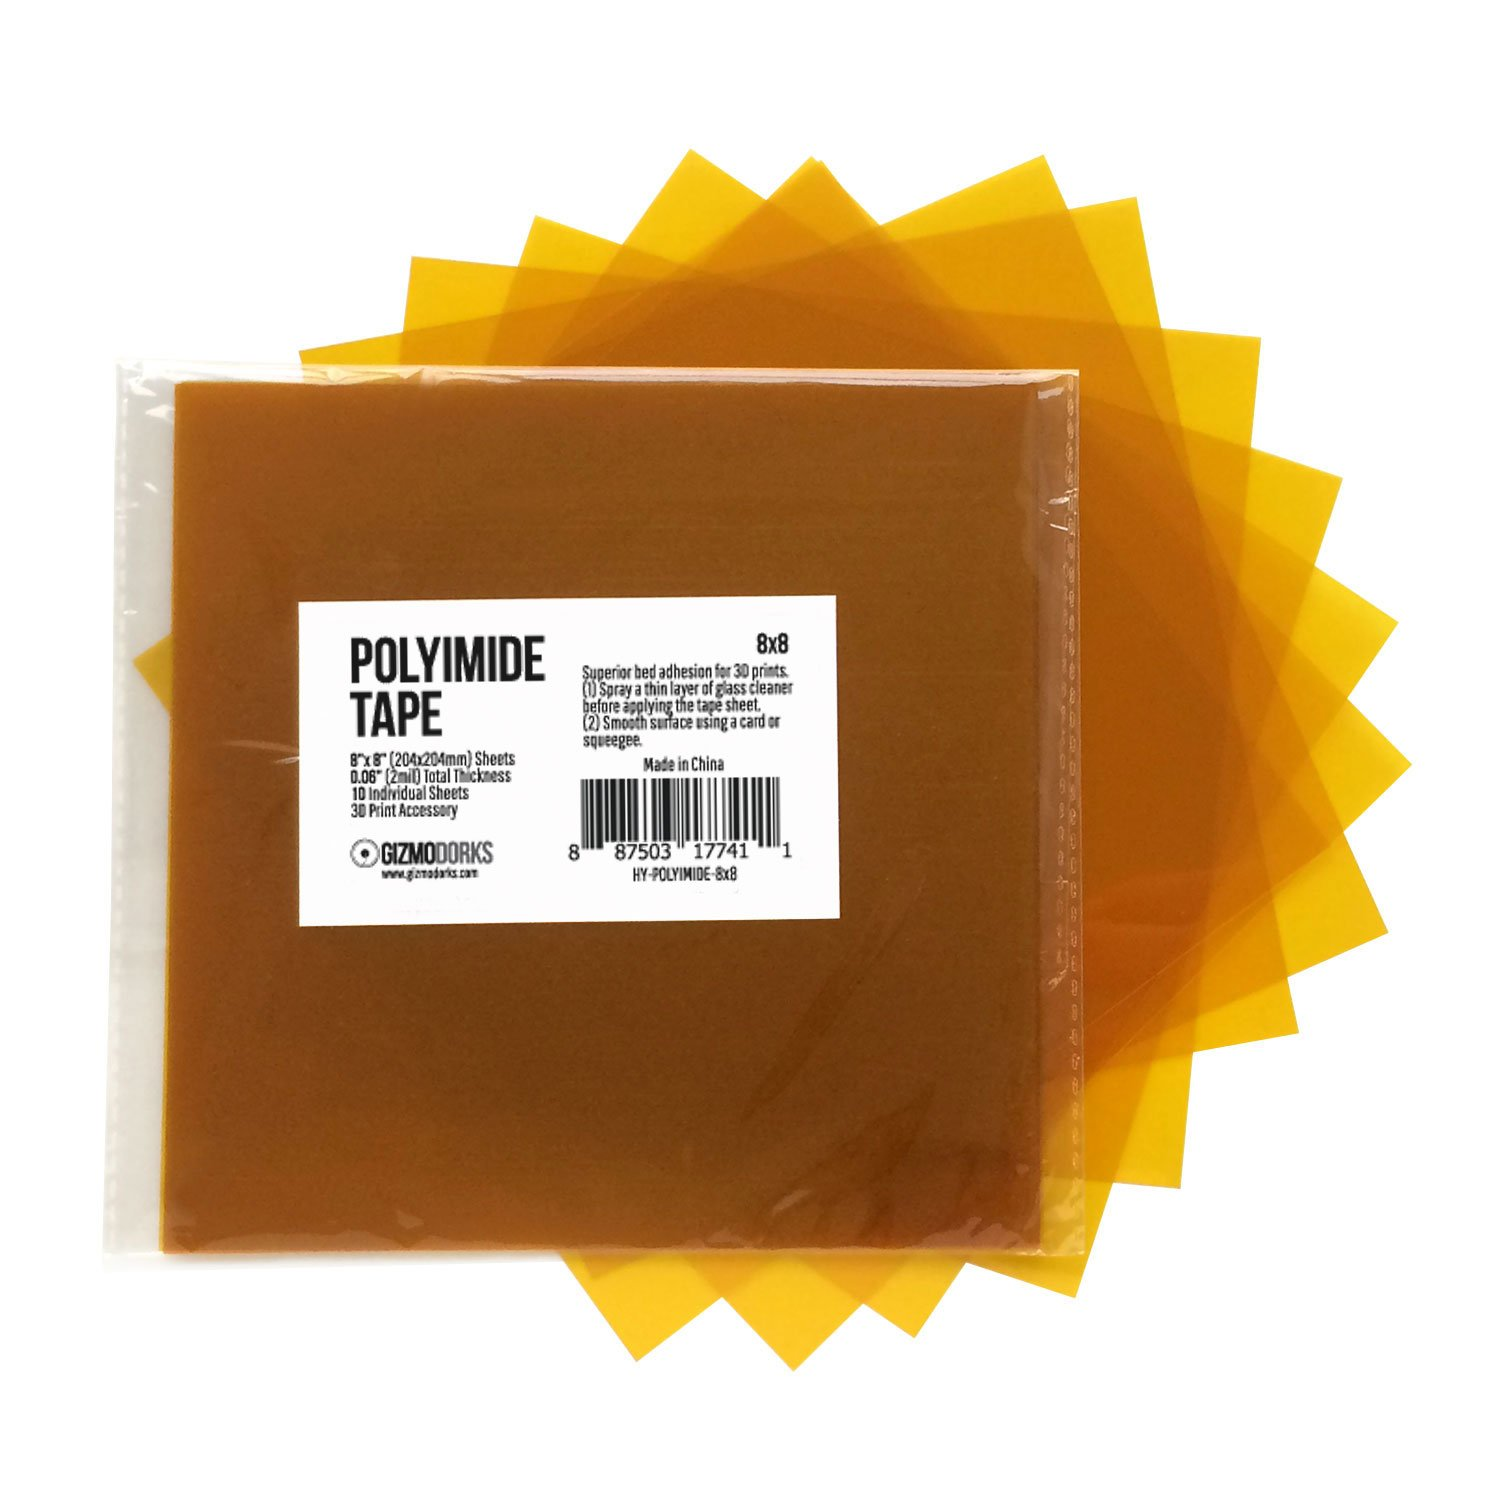 Gizmo Dorks Kapton Tape (Polyimide) for 3D Printers and Printing, 8 x 8 inches, 10 sheets per pack